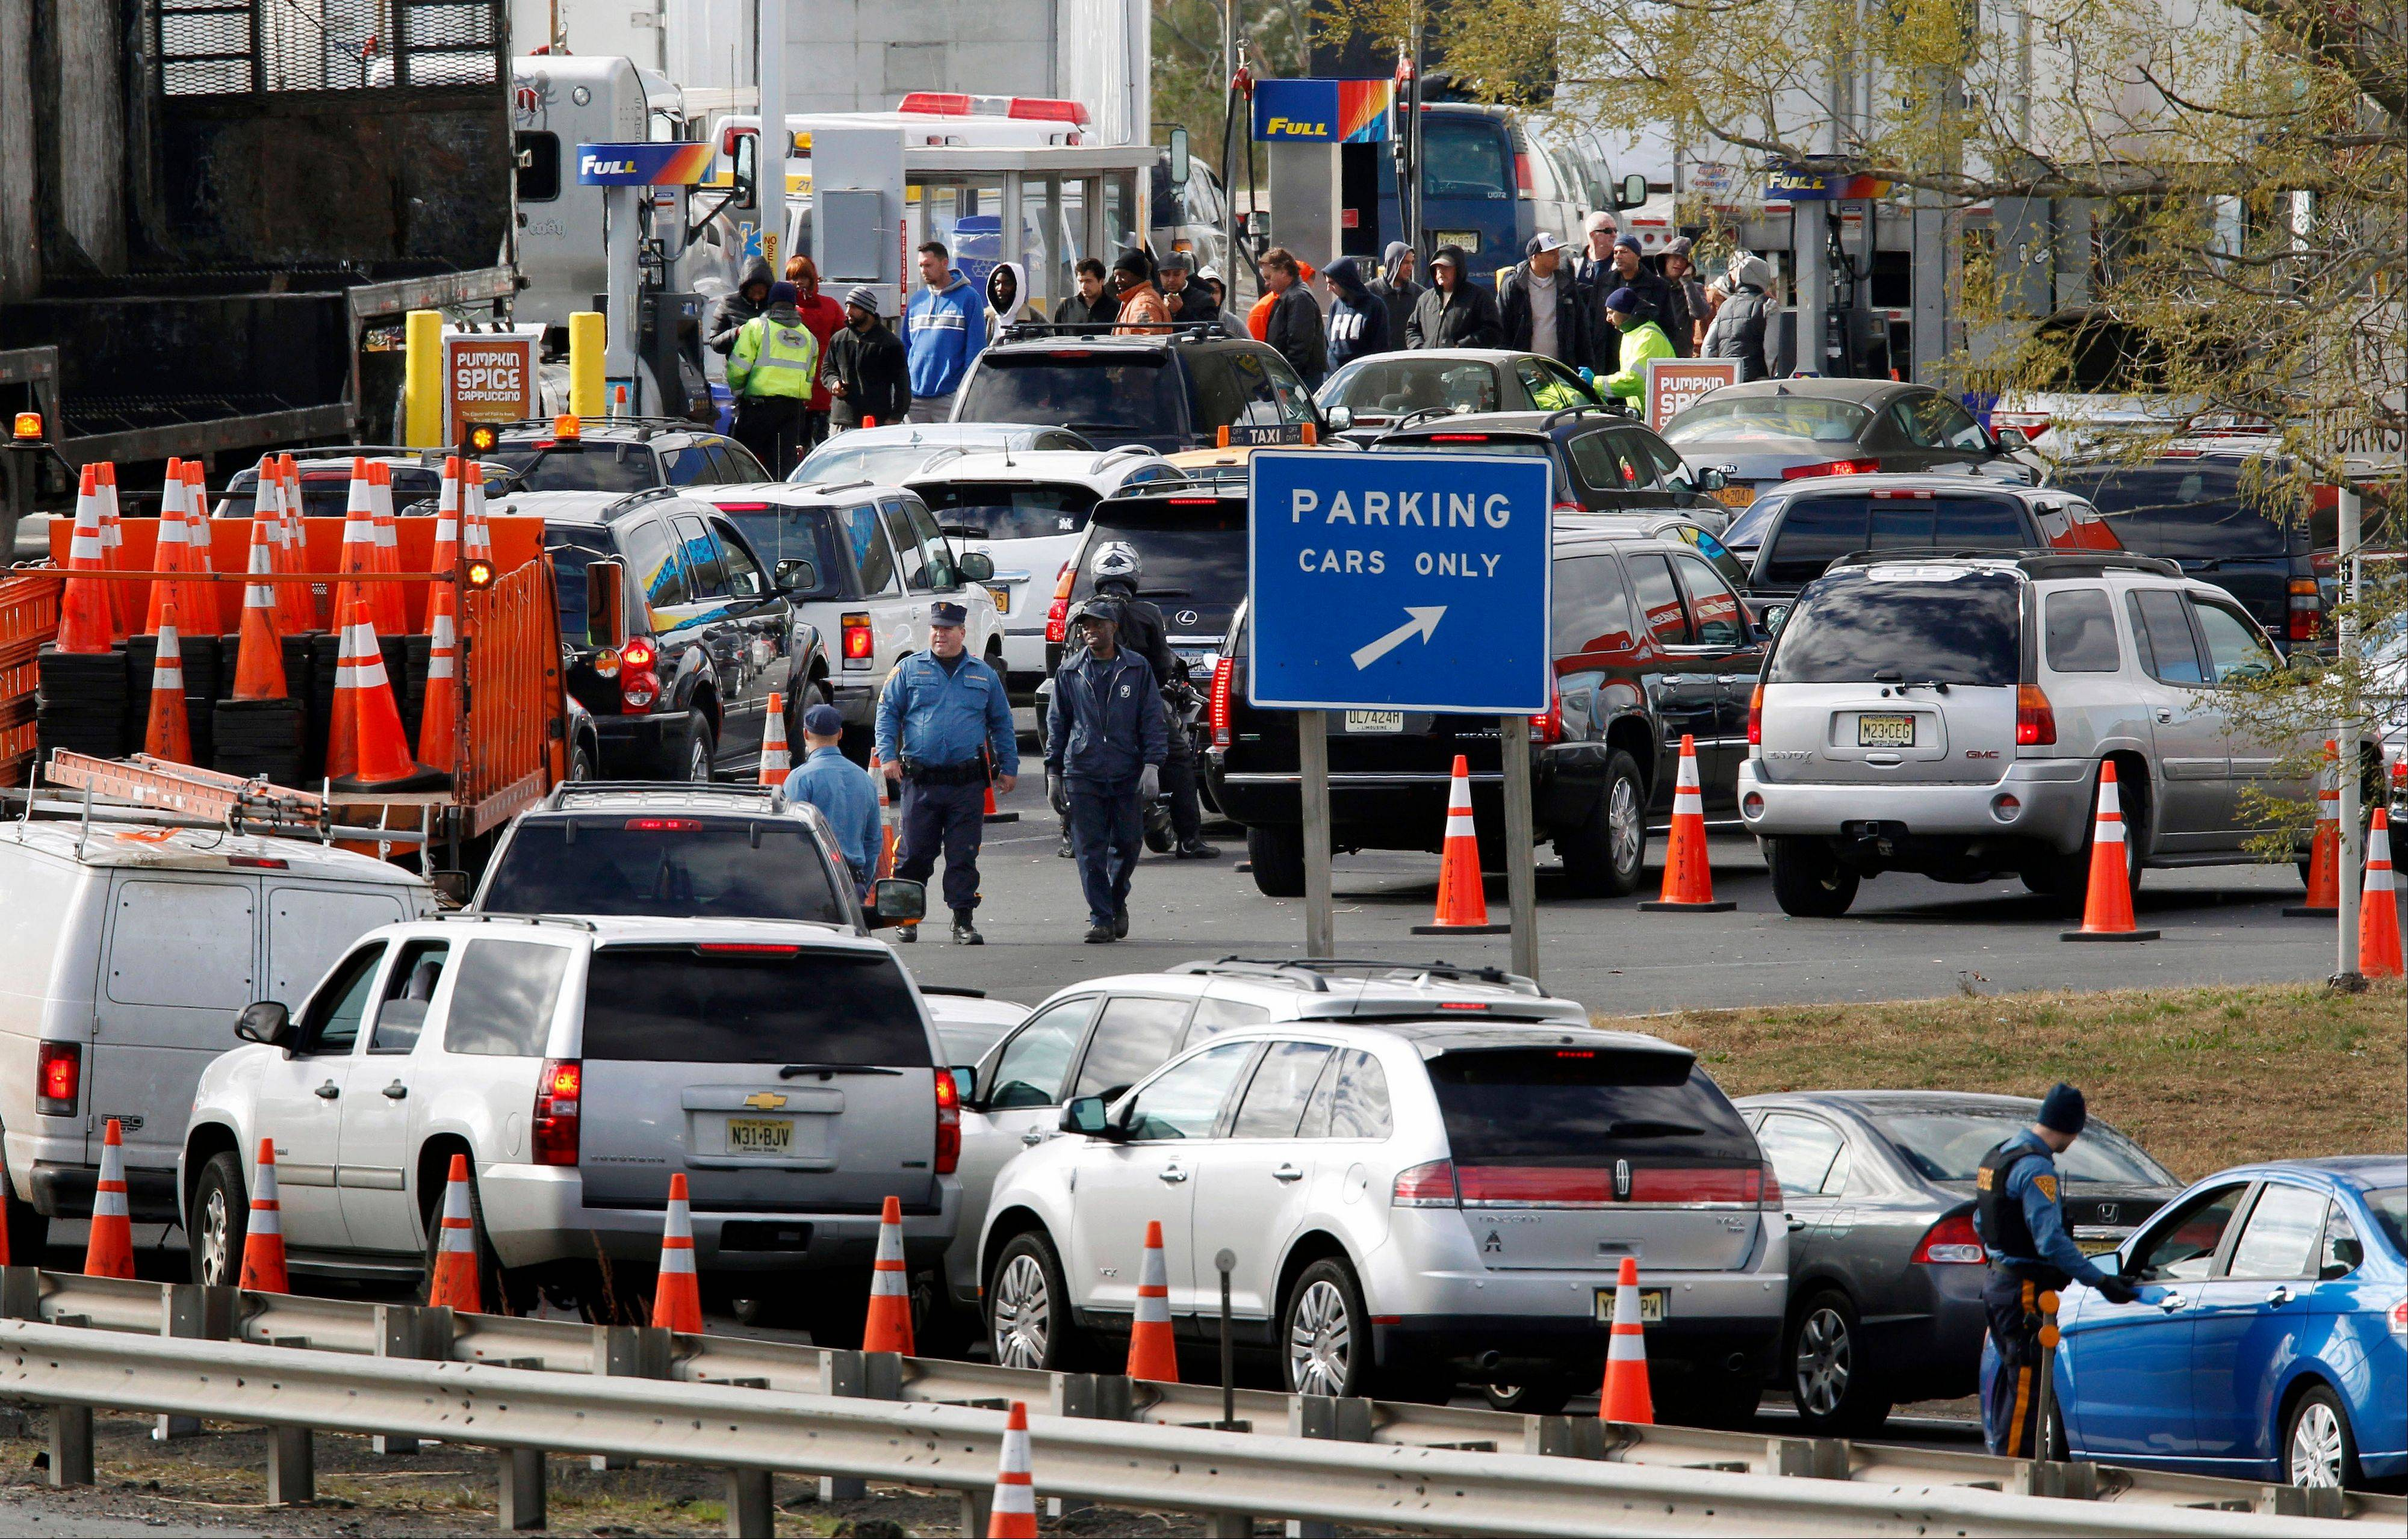 New Jersey state troopers keep order as motorist line up Saturday to purchase gasoline at the Thomas A. Edison service area on the New Jersey Turnpike.